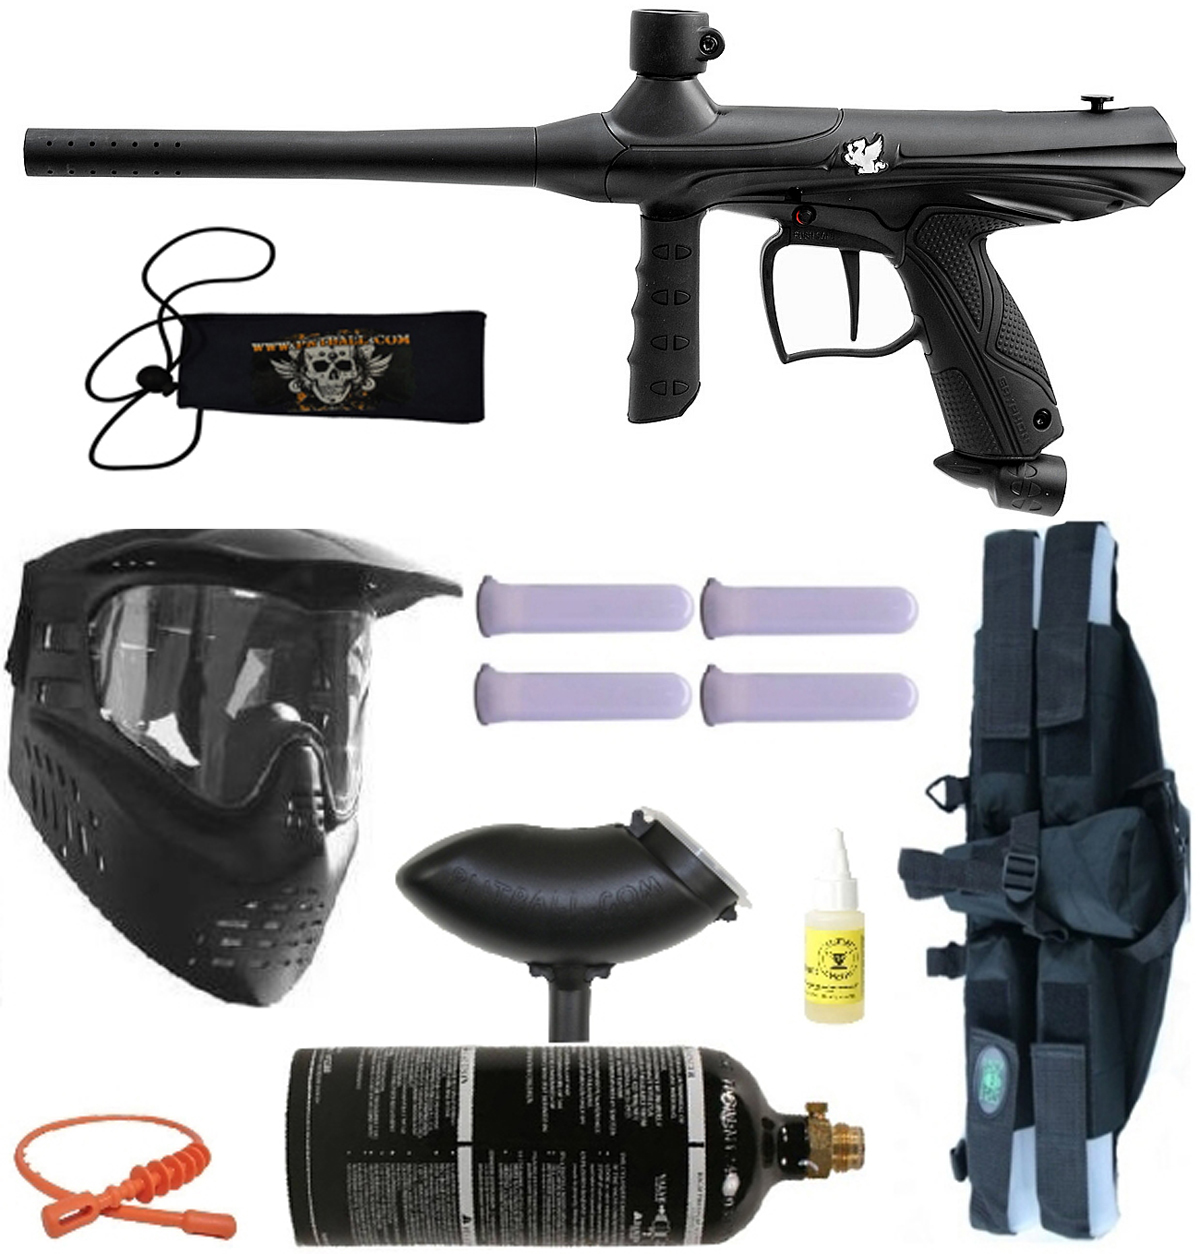 Tippmann Paintball Tippmann GRYPHON Paintball Gun 4+1 BC Mega - Black at Sears.com